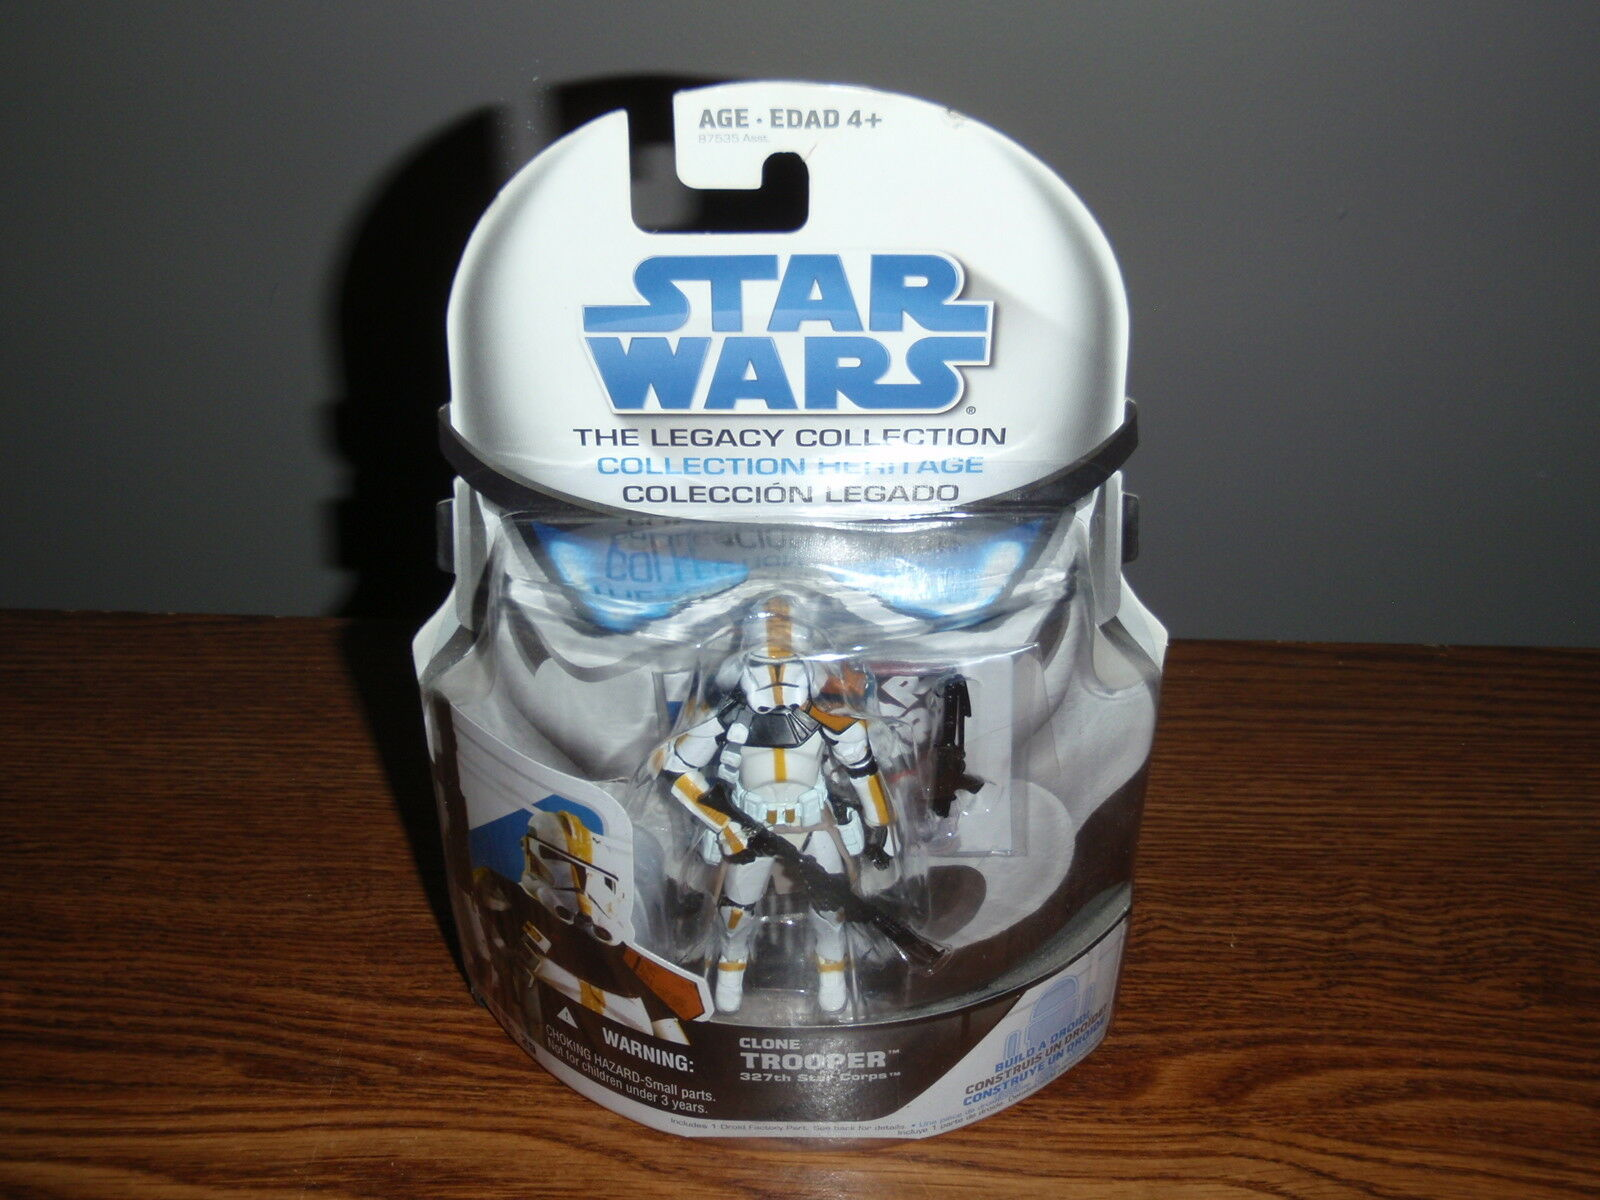 STAR WARS Legacy Collection BD 29 Clone TROOPER 327th Corps 2008 R5-A2 Figure